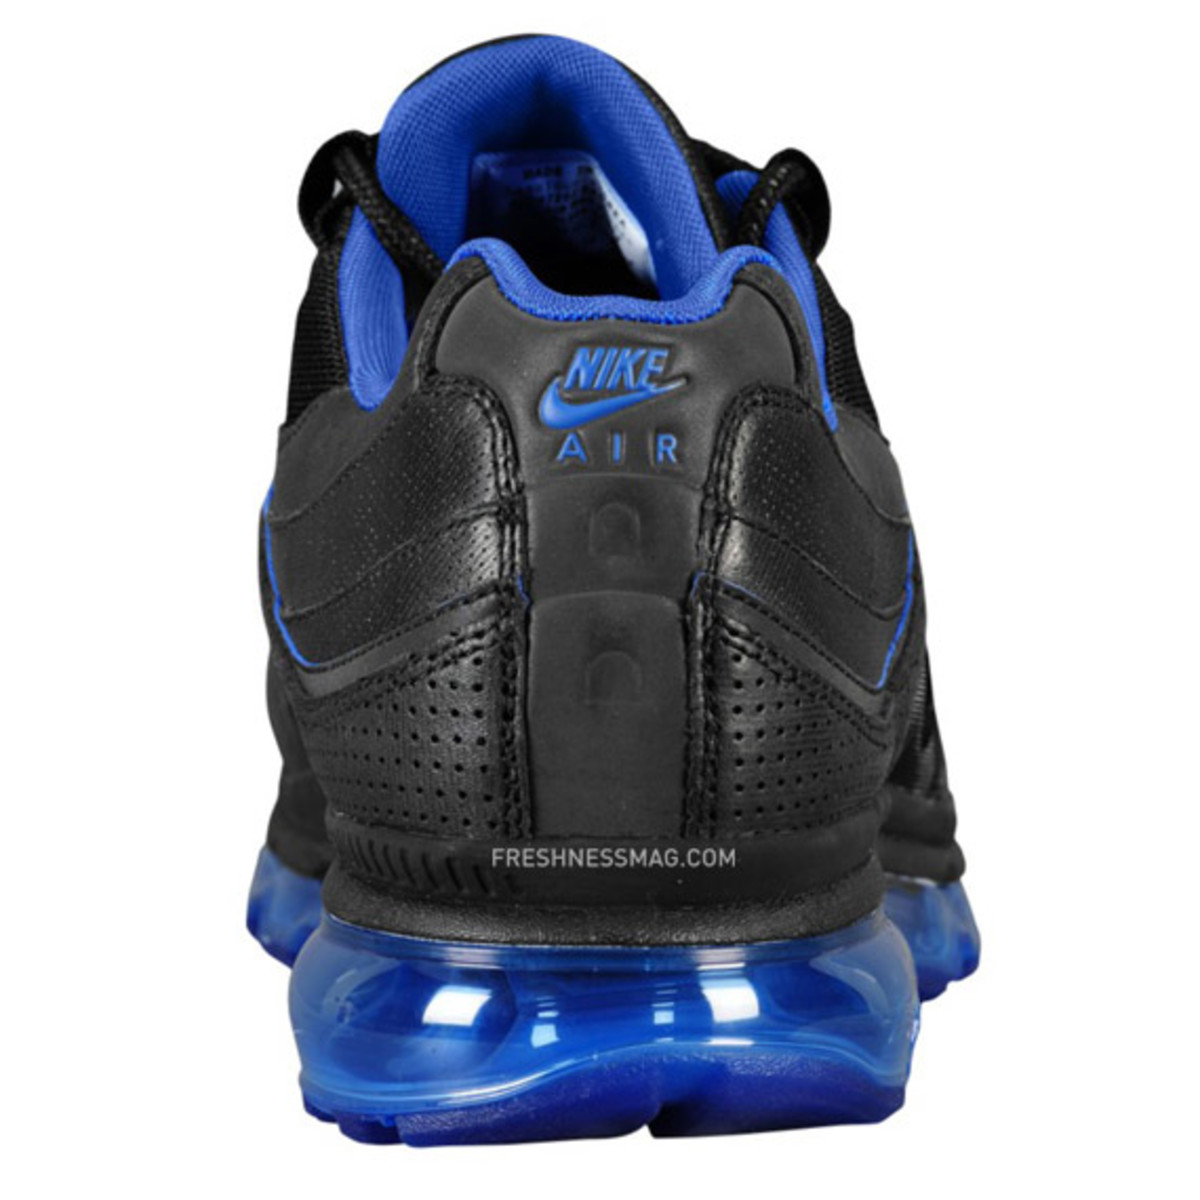 nike-air-max-24-7-air-attack-blue-05